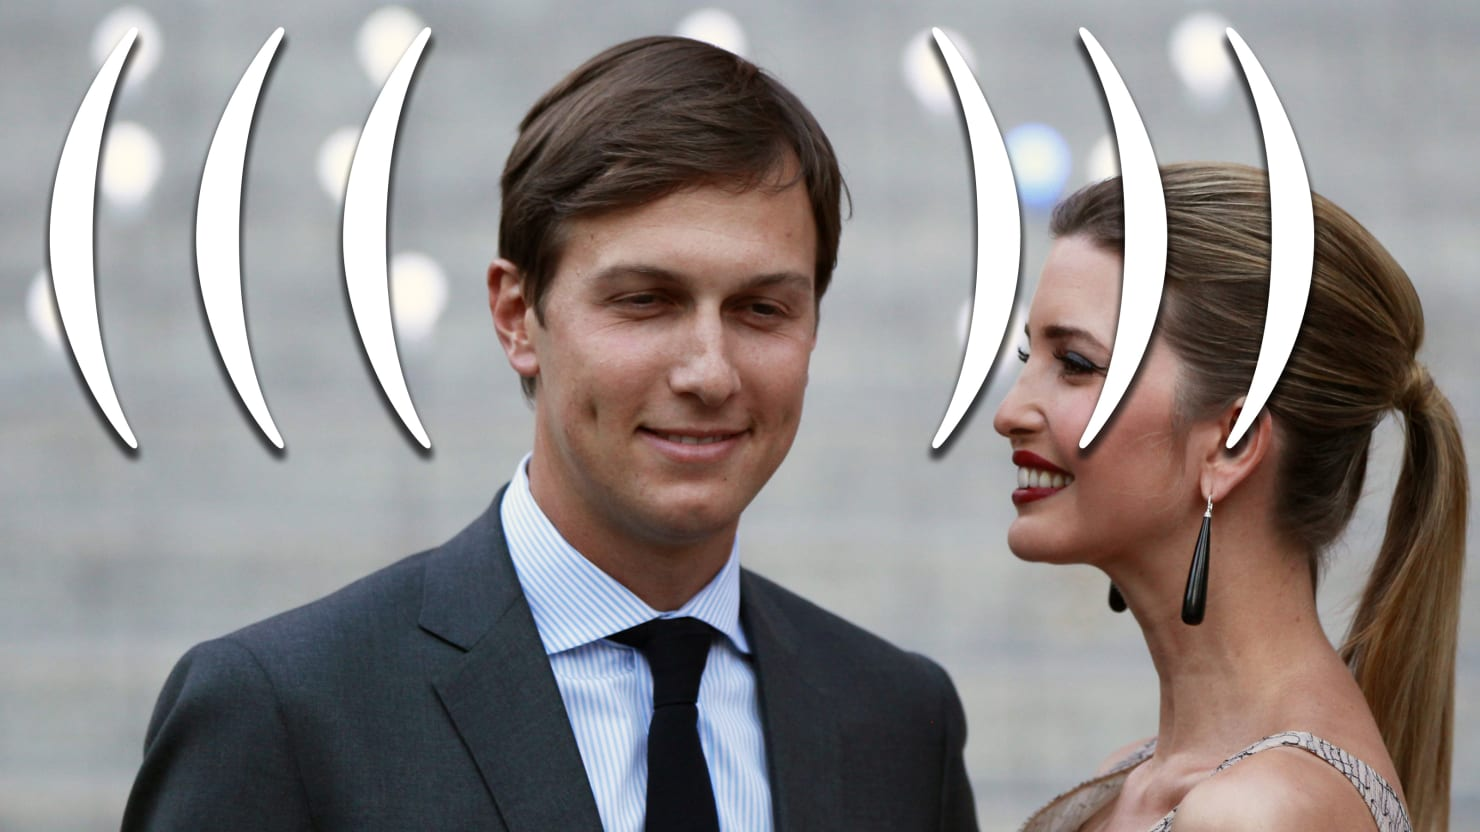 Jew Detector: Racist 'Jew Tracker' Targets Trump's Son-in-Law